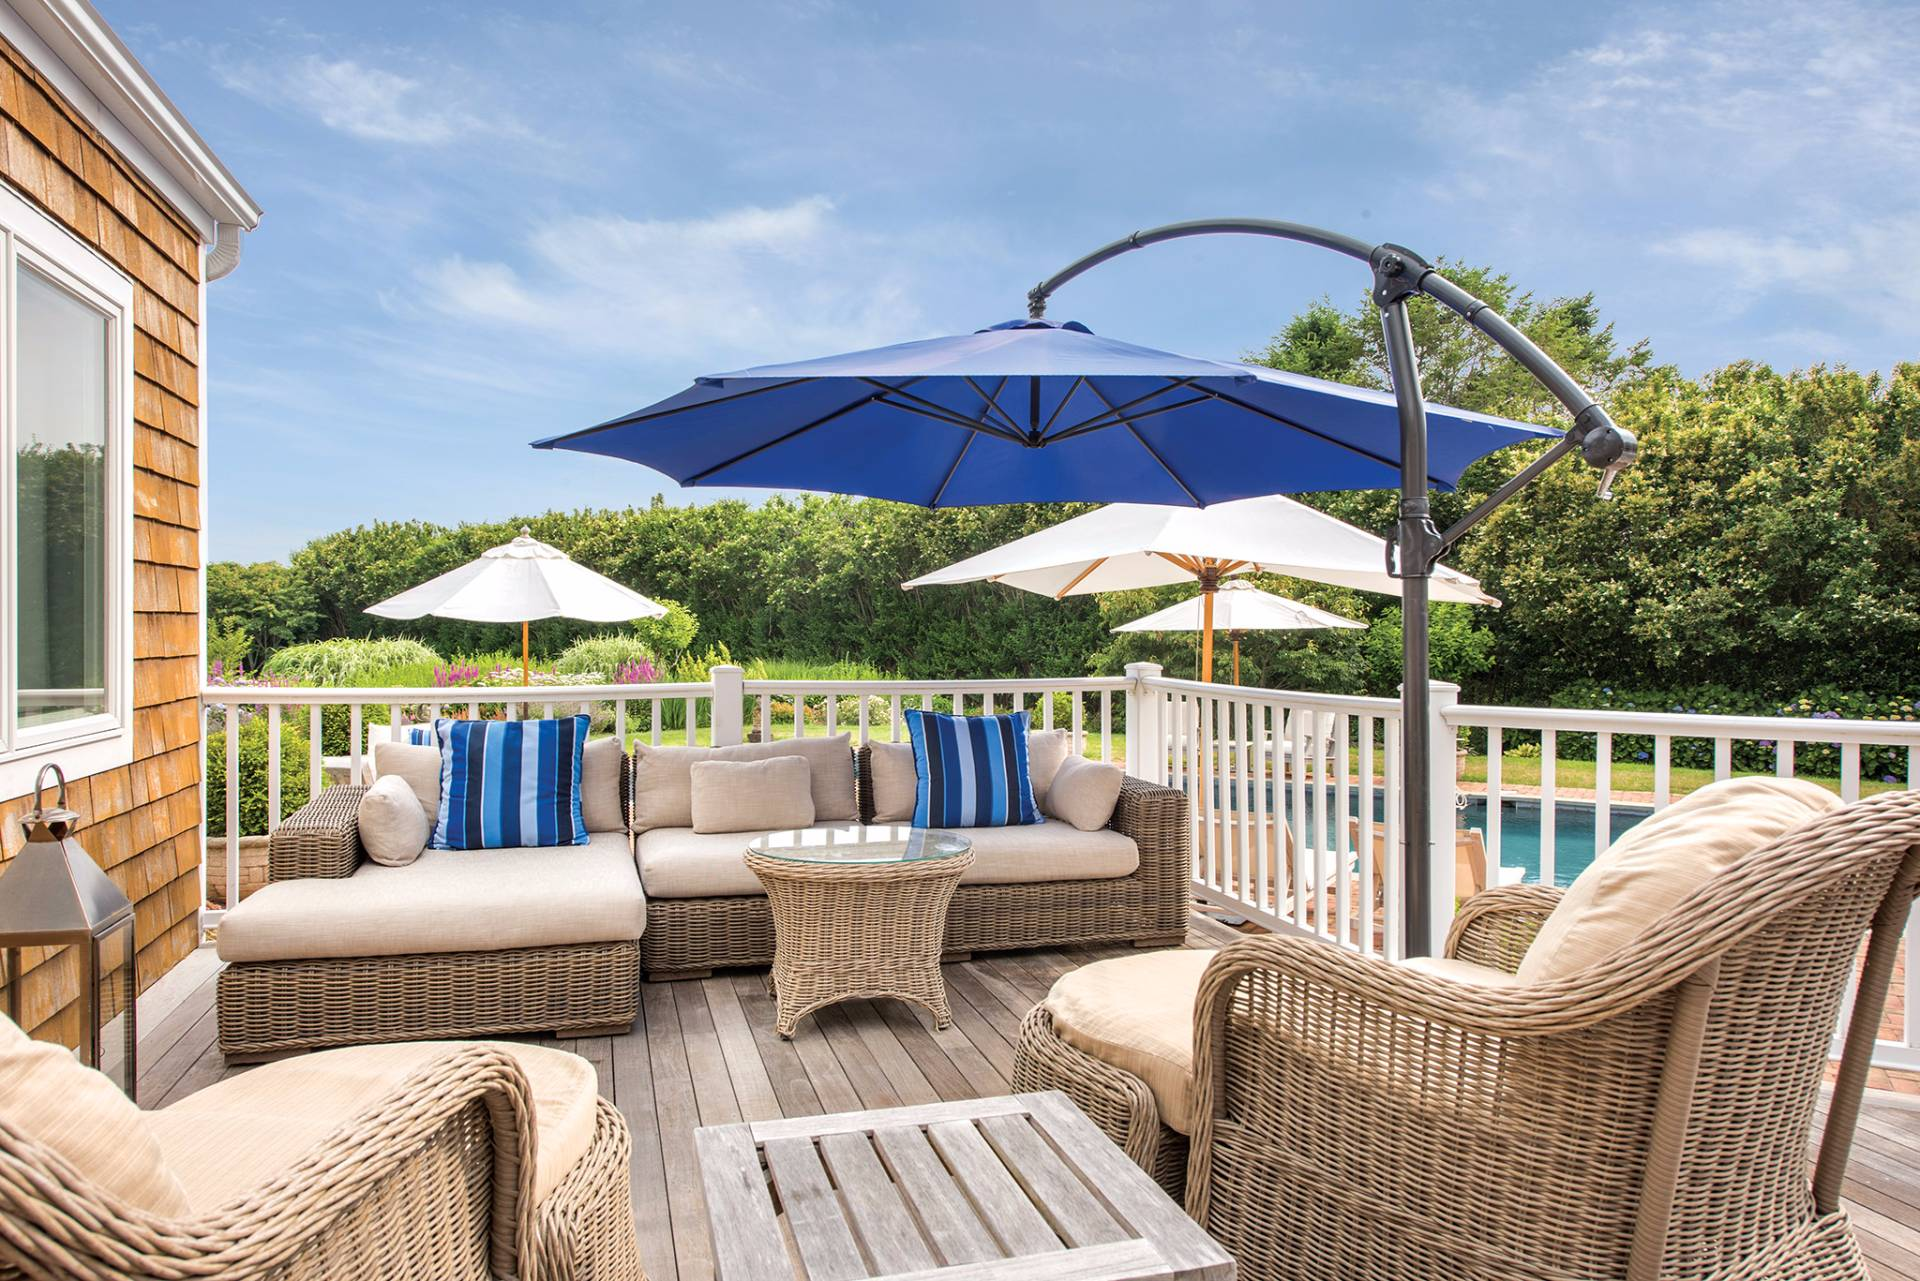 Additional photo for property listing at Sagaponack Private Oasis  Sagaponack, Nueva York